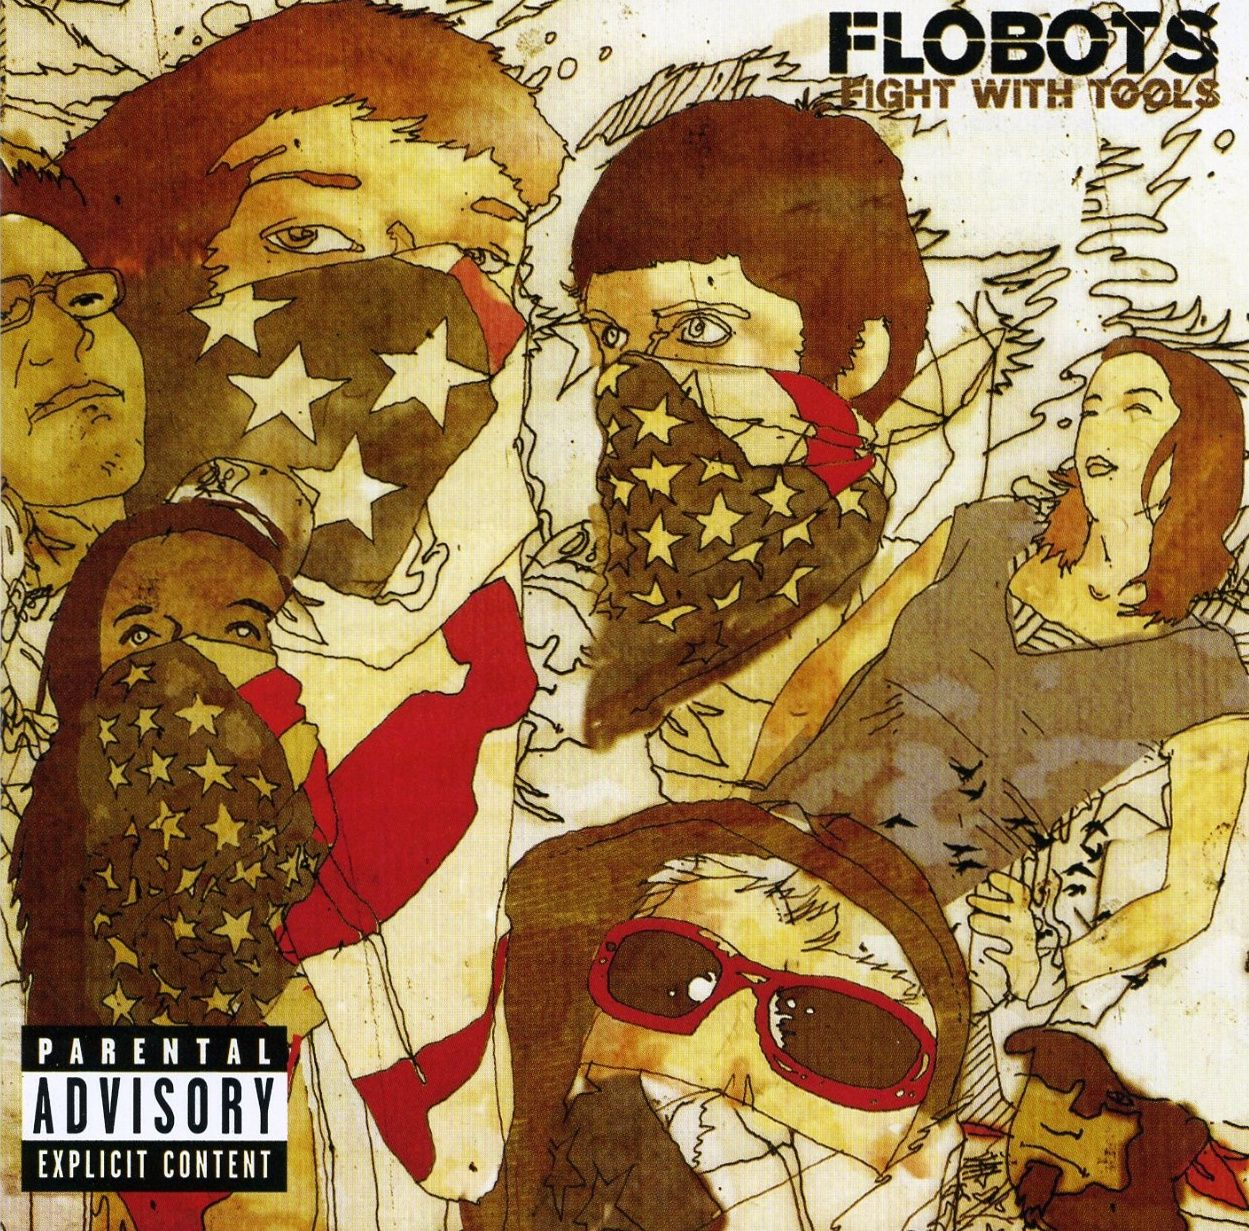 Flobots - Fight With Tools album cover